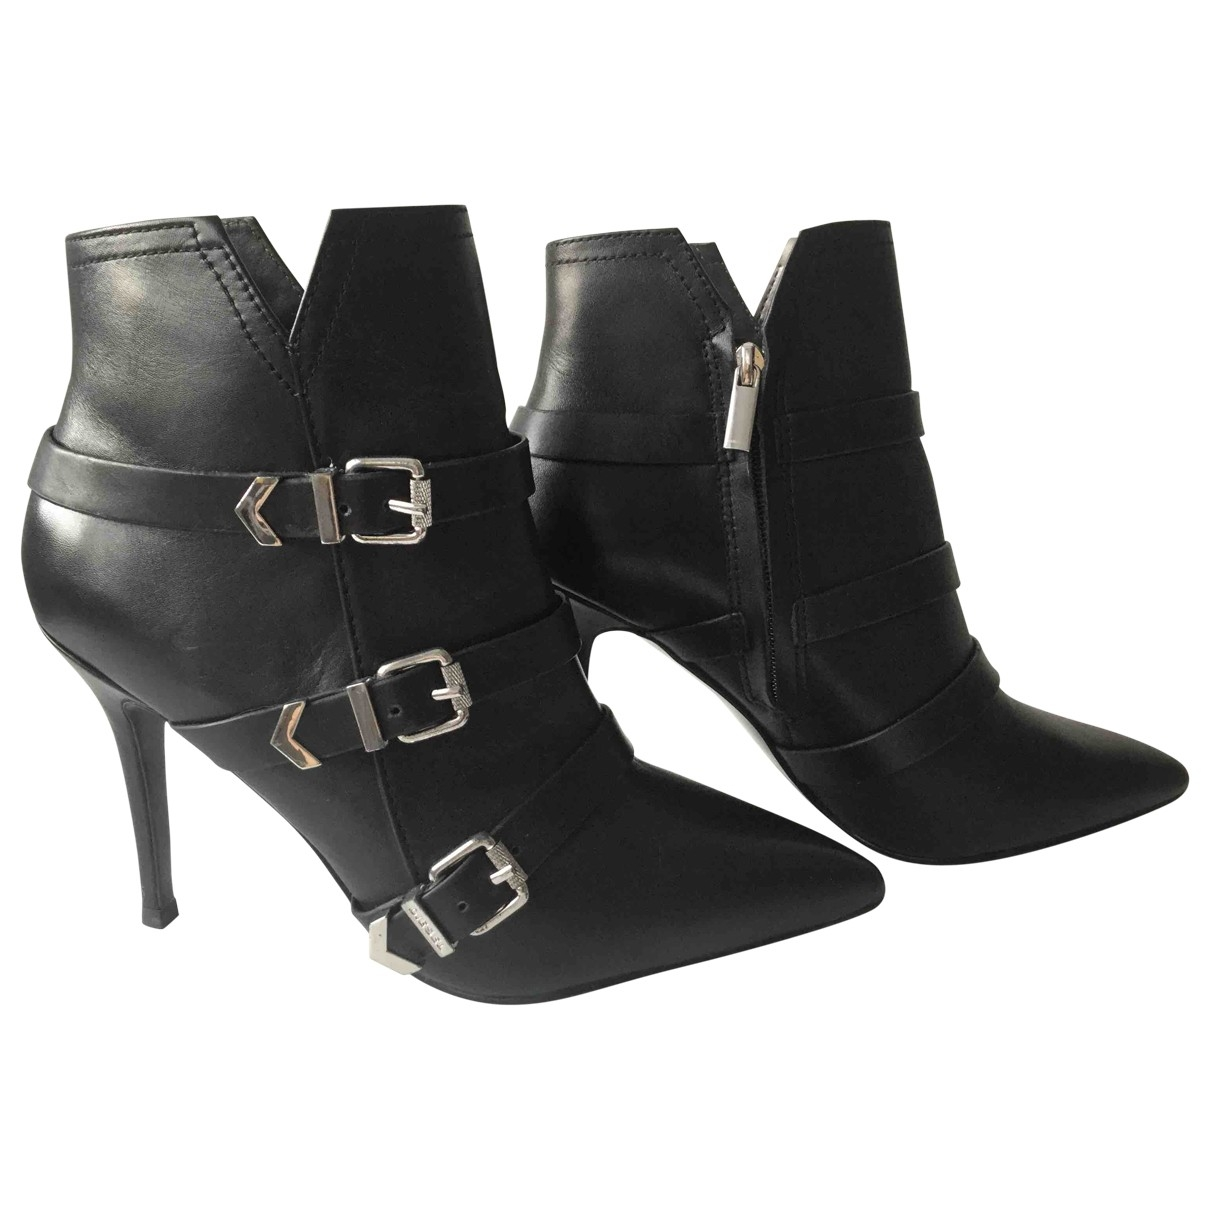 Diesel \N Black Leather Ankle boots for Women 39 EU